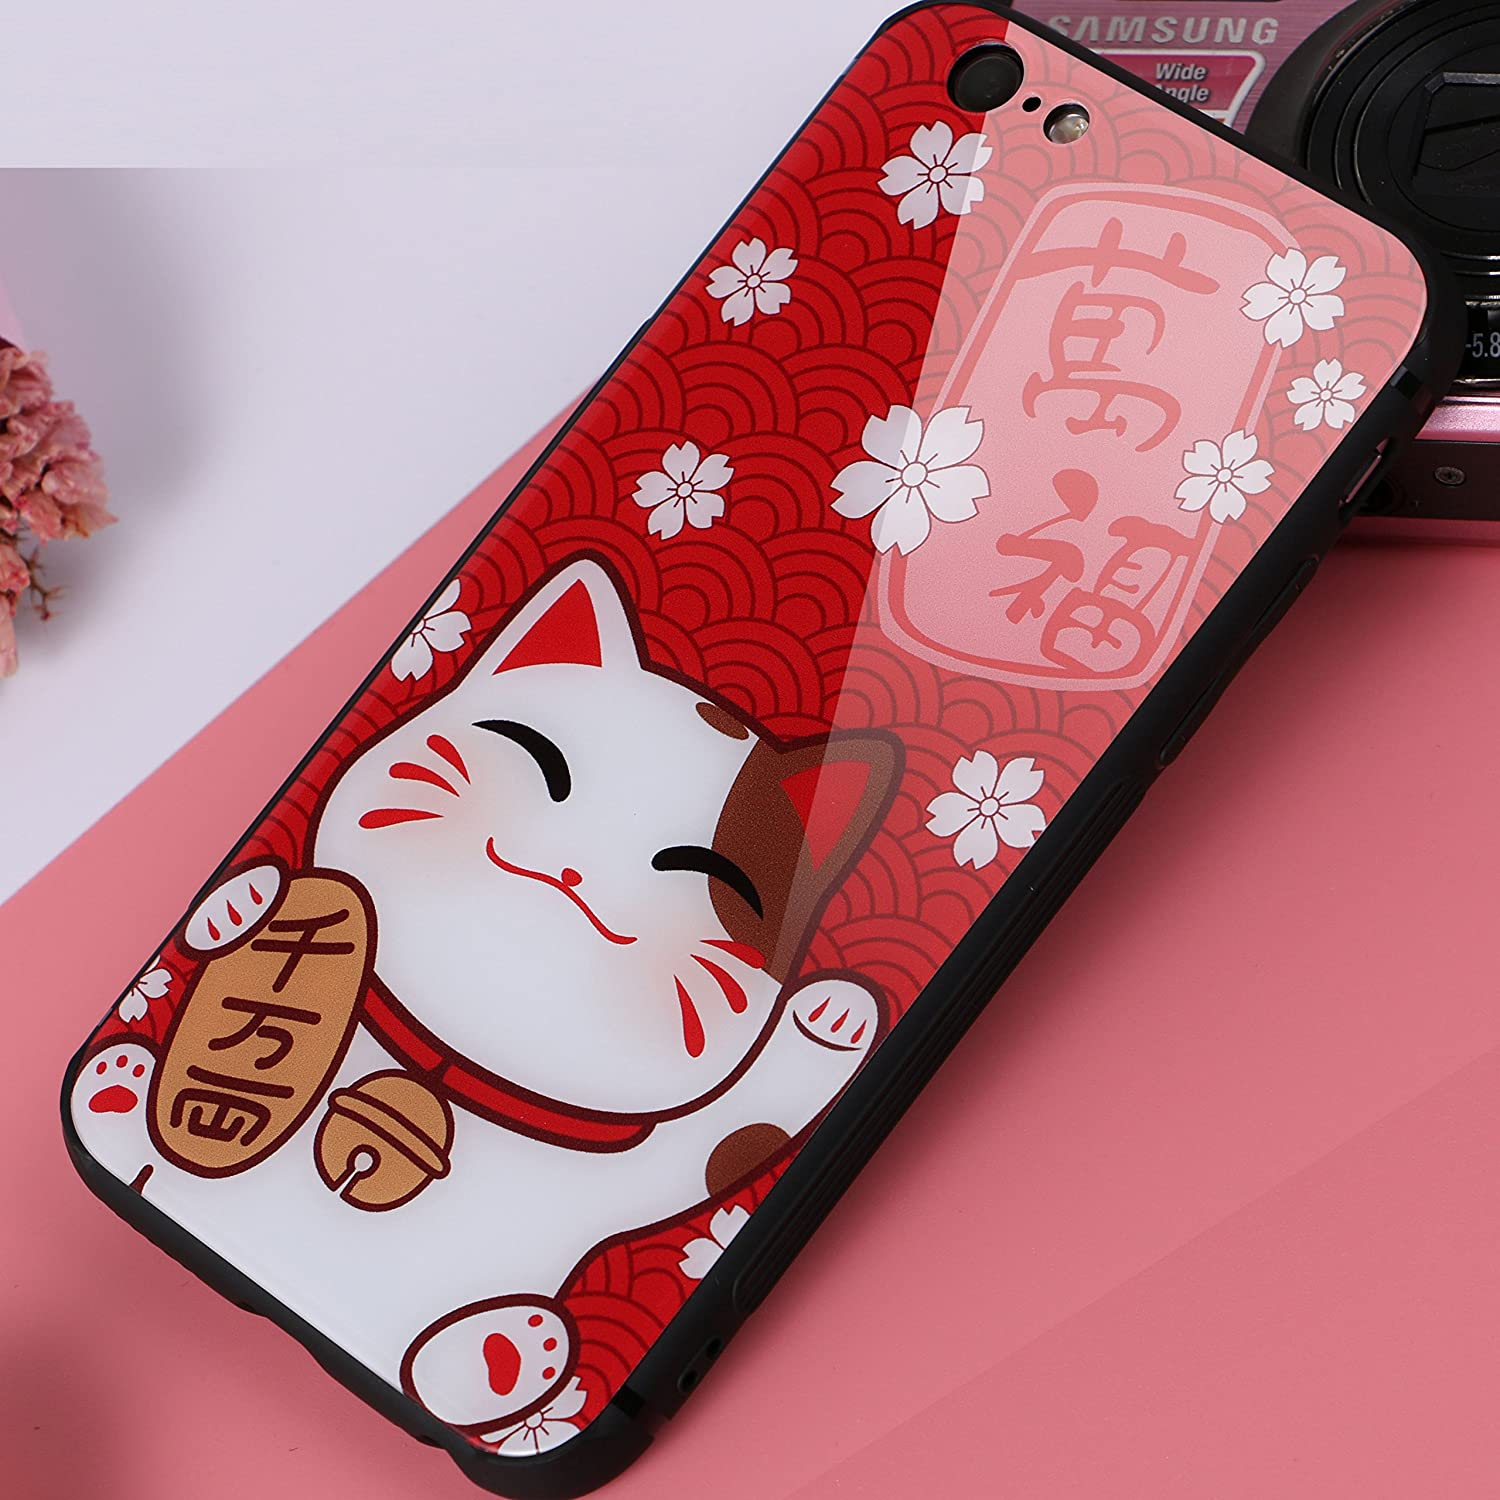 AiChose iPhone 7 Case iPhone 8 Case Fortune Cat for Your Phone Year Tempered Glass Back Cover with Soft TPU Bumper Frame Shock Absorption Strong Protection